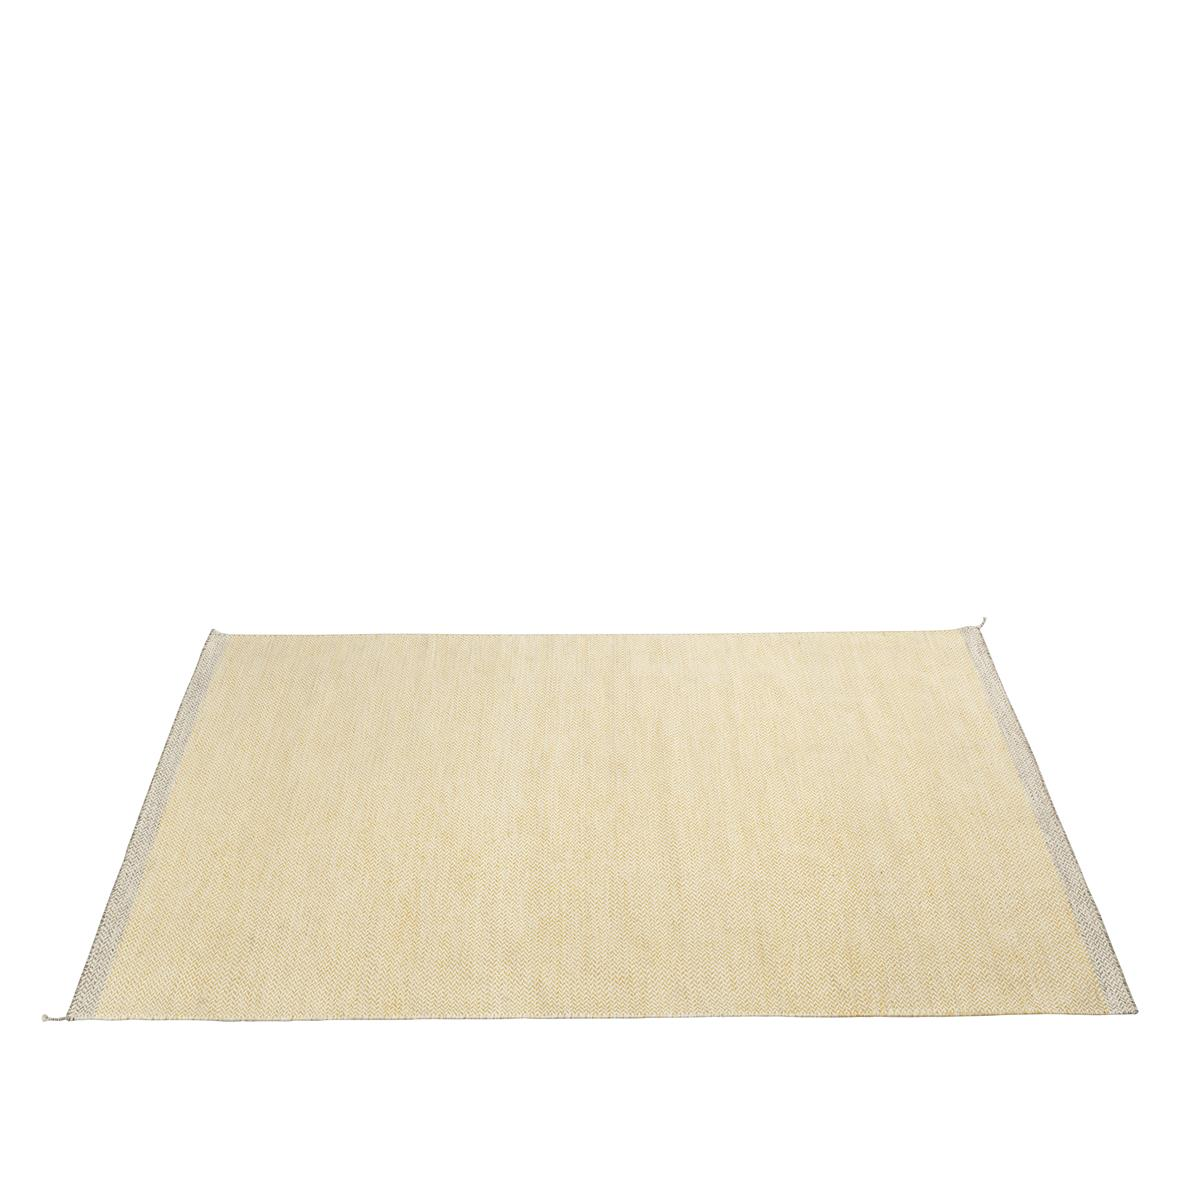 Ply Rug i 200 X 300 cm, Yellow